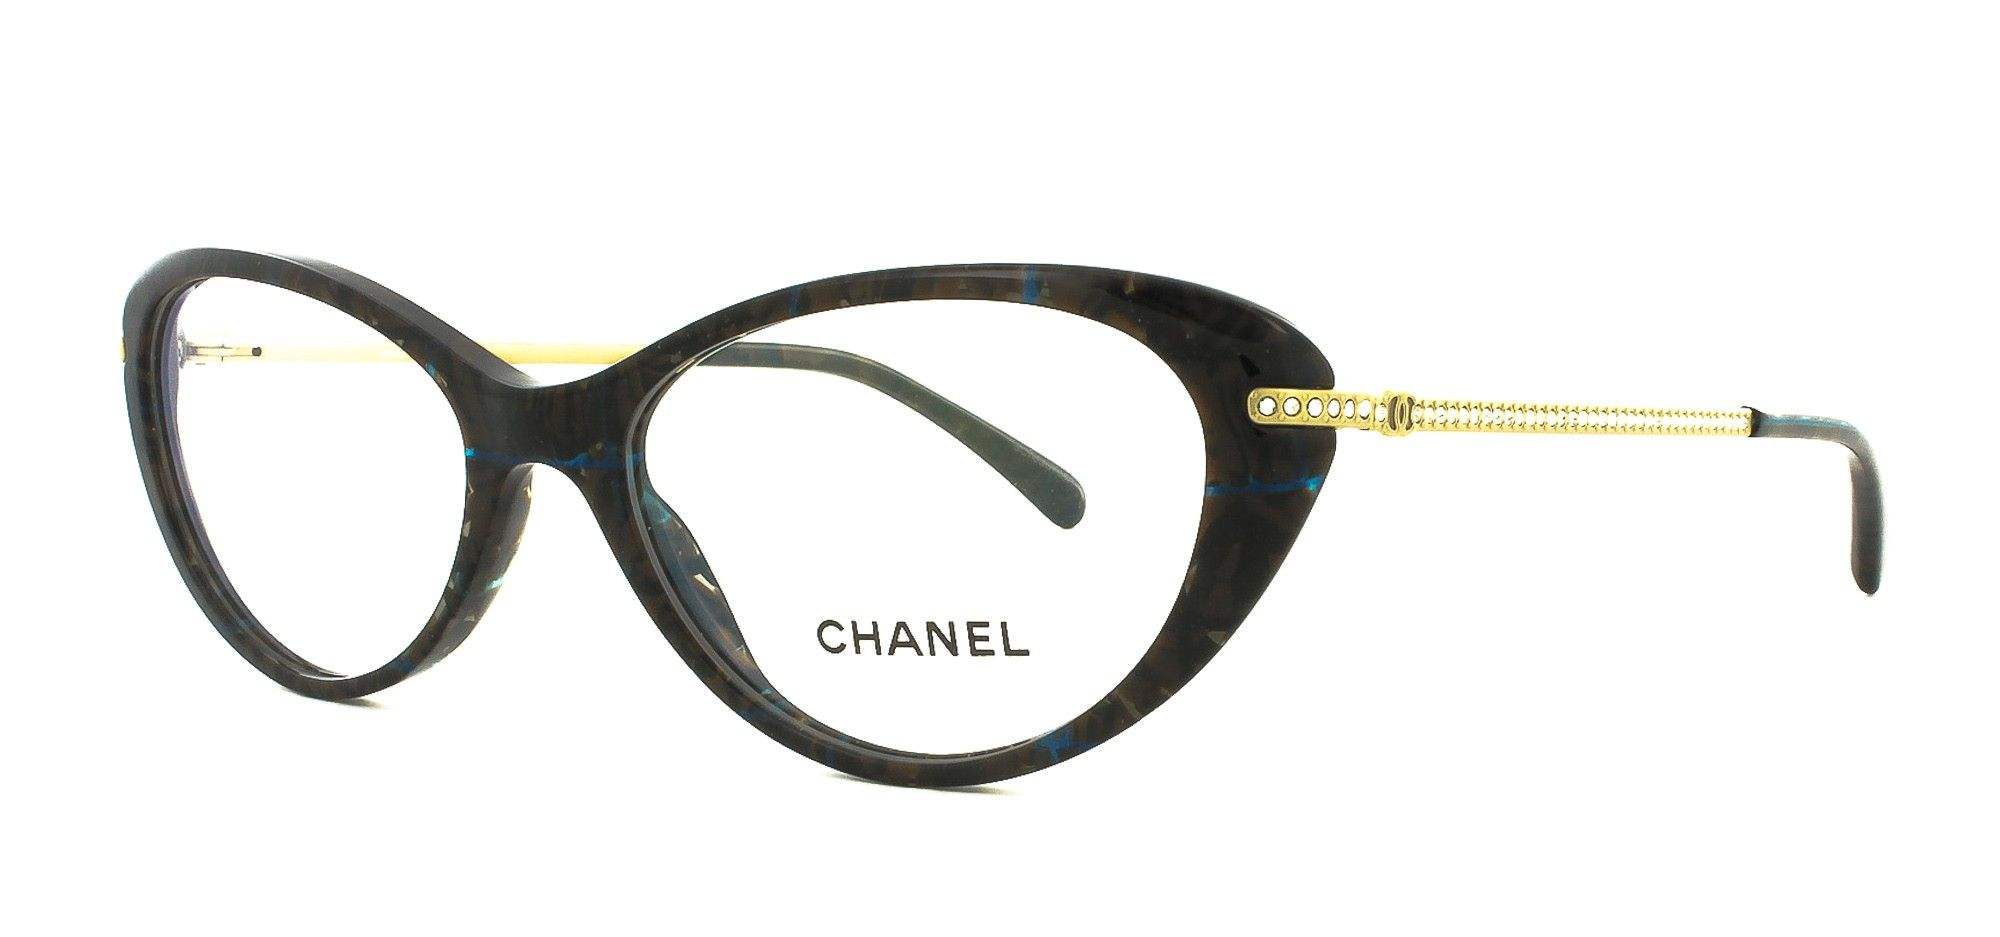 4f4ac9795 Chanel 3296B Glasses Online with FREE Lenses & UK Delivery | Hats ...